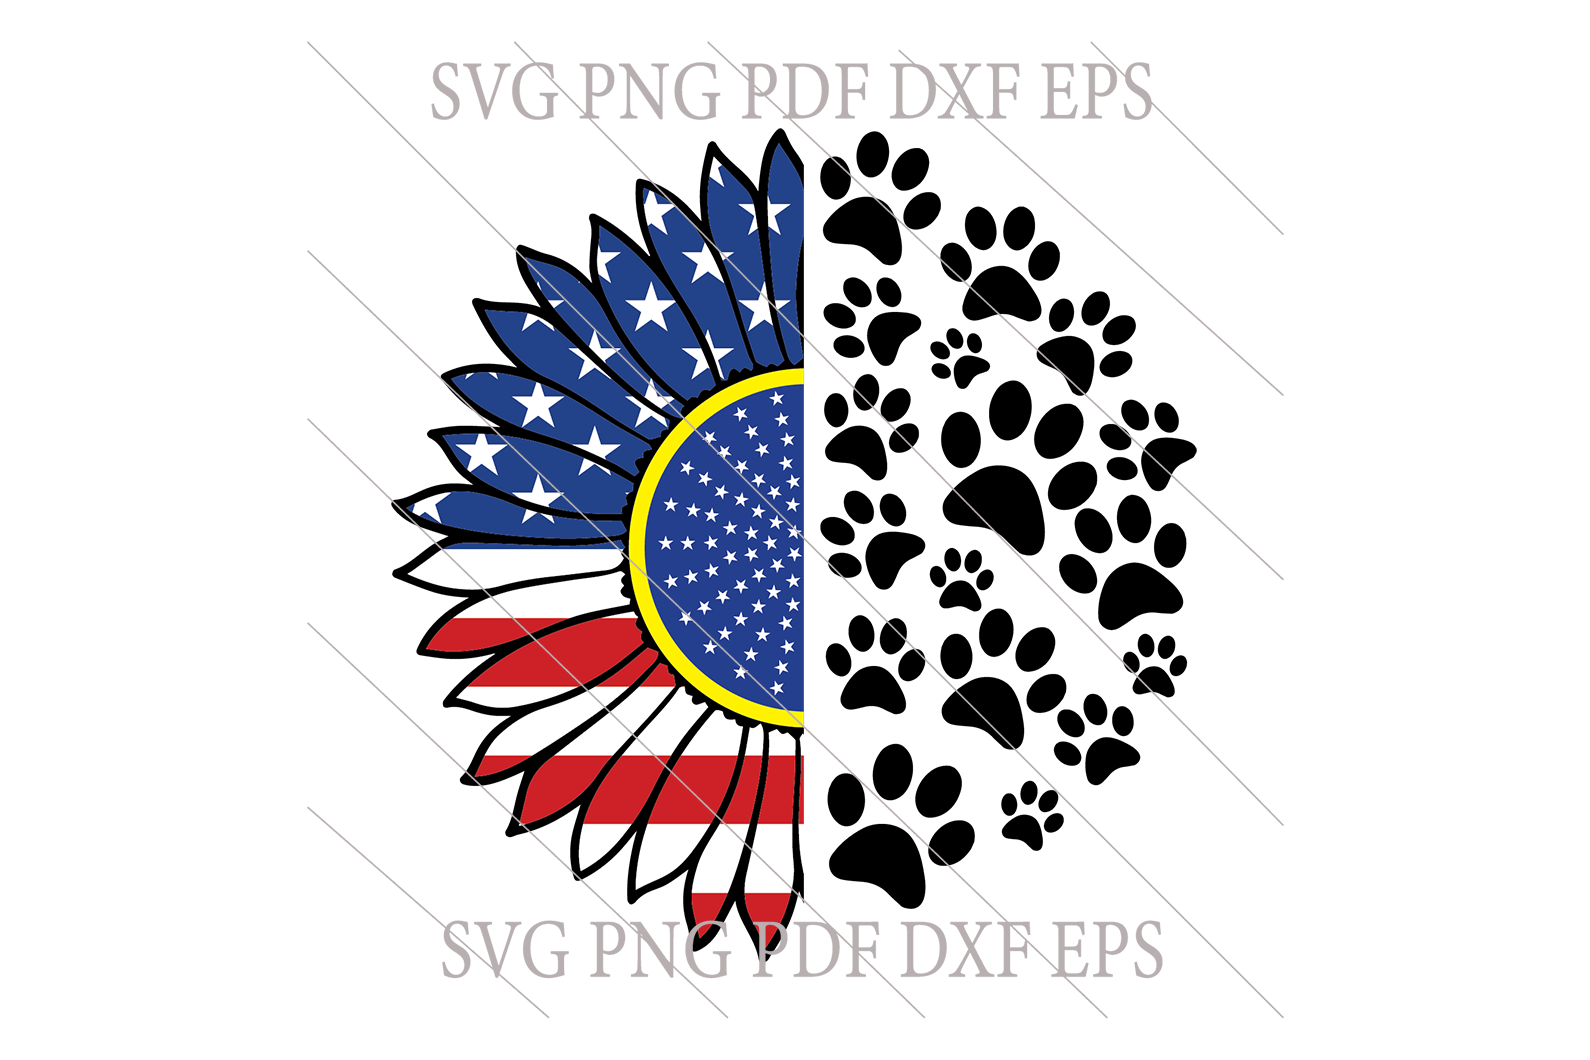 Grand paw dog SVG,SVG Files For Silhouette, Files For Cricut, SVG, DXF, EPS, PNG Instant Download